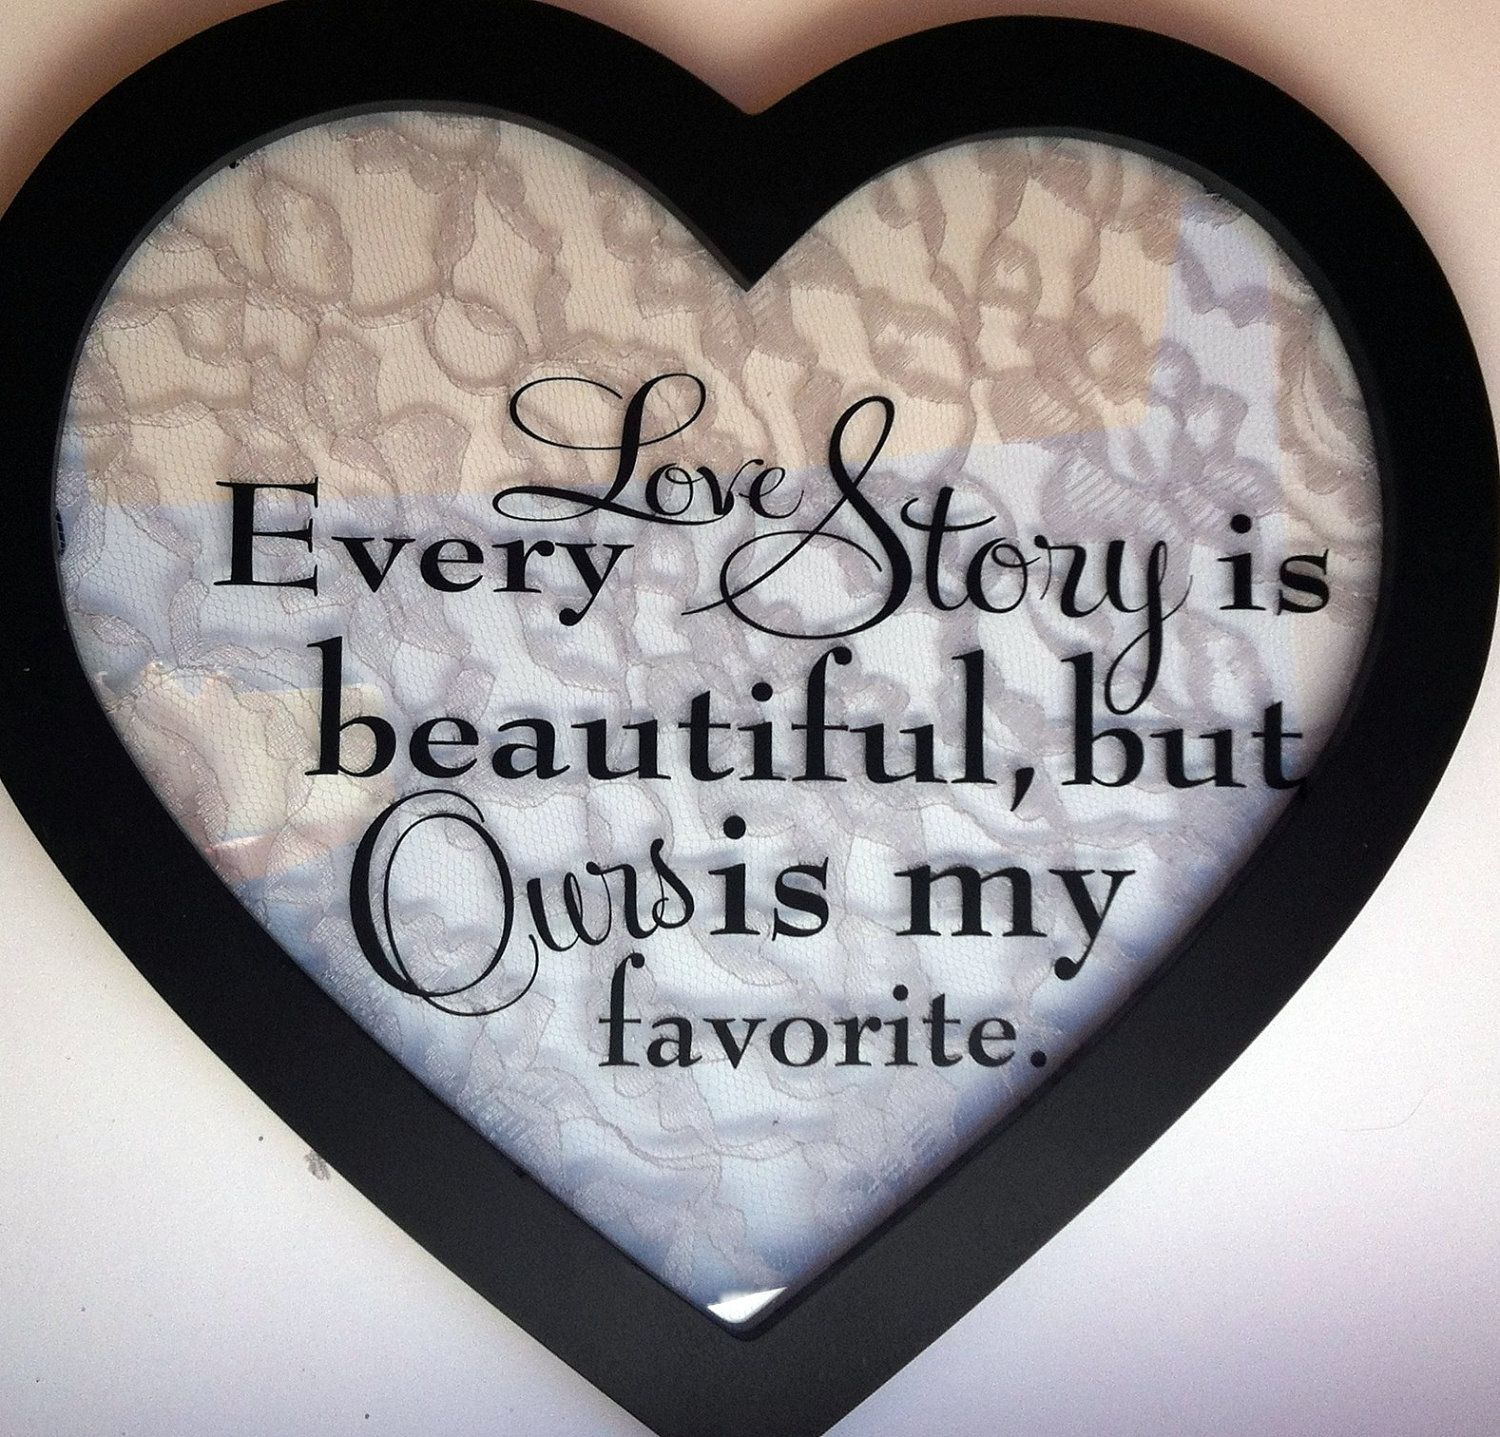 Love Story Quote Wall Decor in Heart Shape Frame $20 00 via Etsy